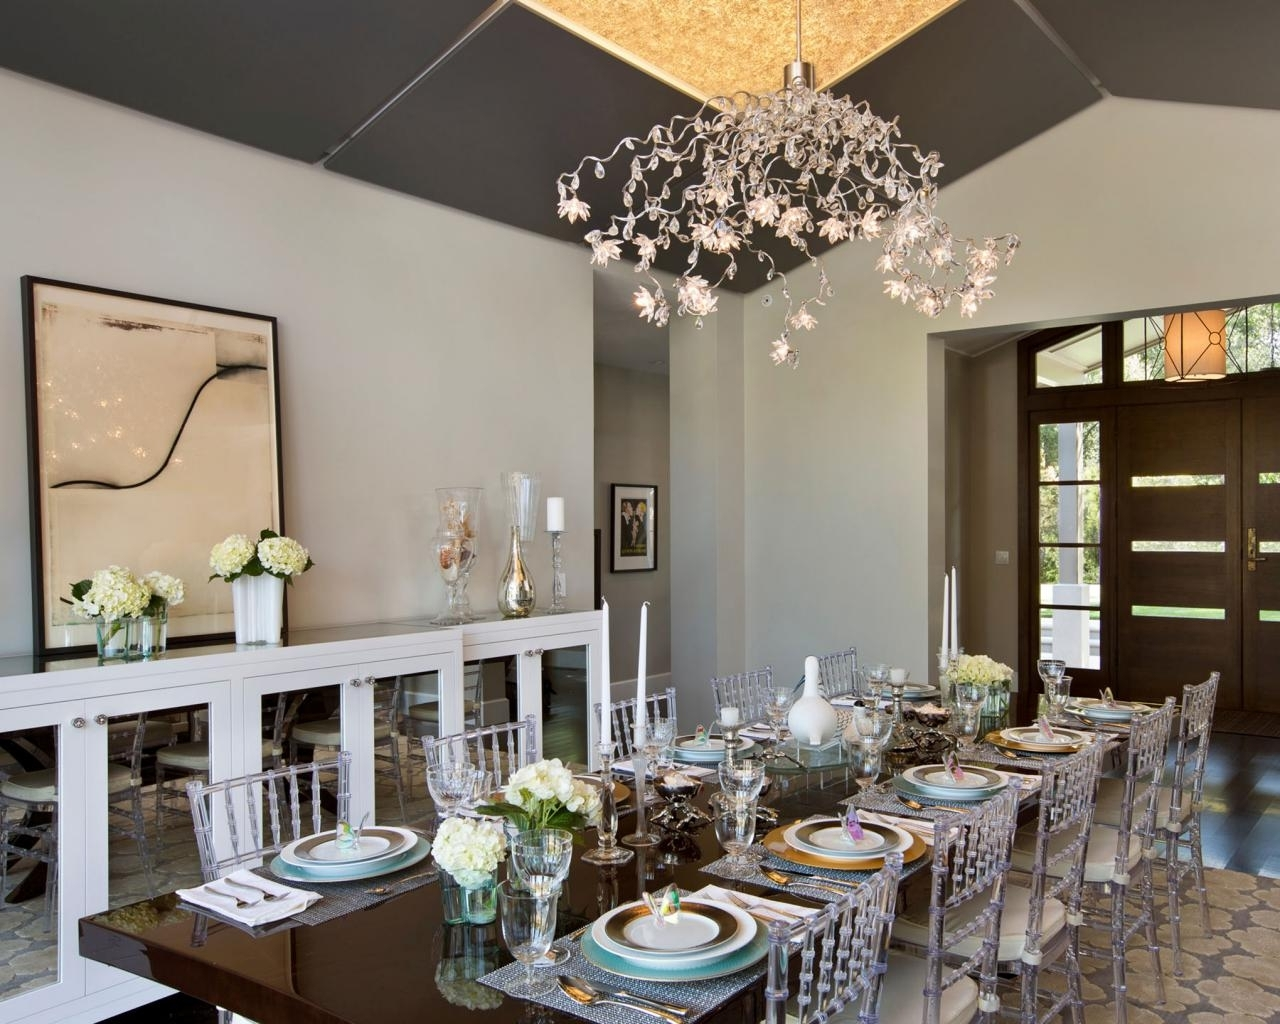 Favorite Furniture : Designer Table Lamps Living Room 2 Cool Dining 45 Dining With Regard To Chandelier Lights For Living Room (View 16 of 20)